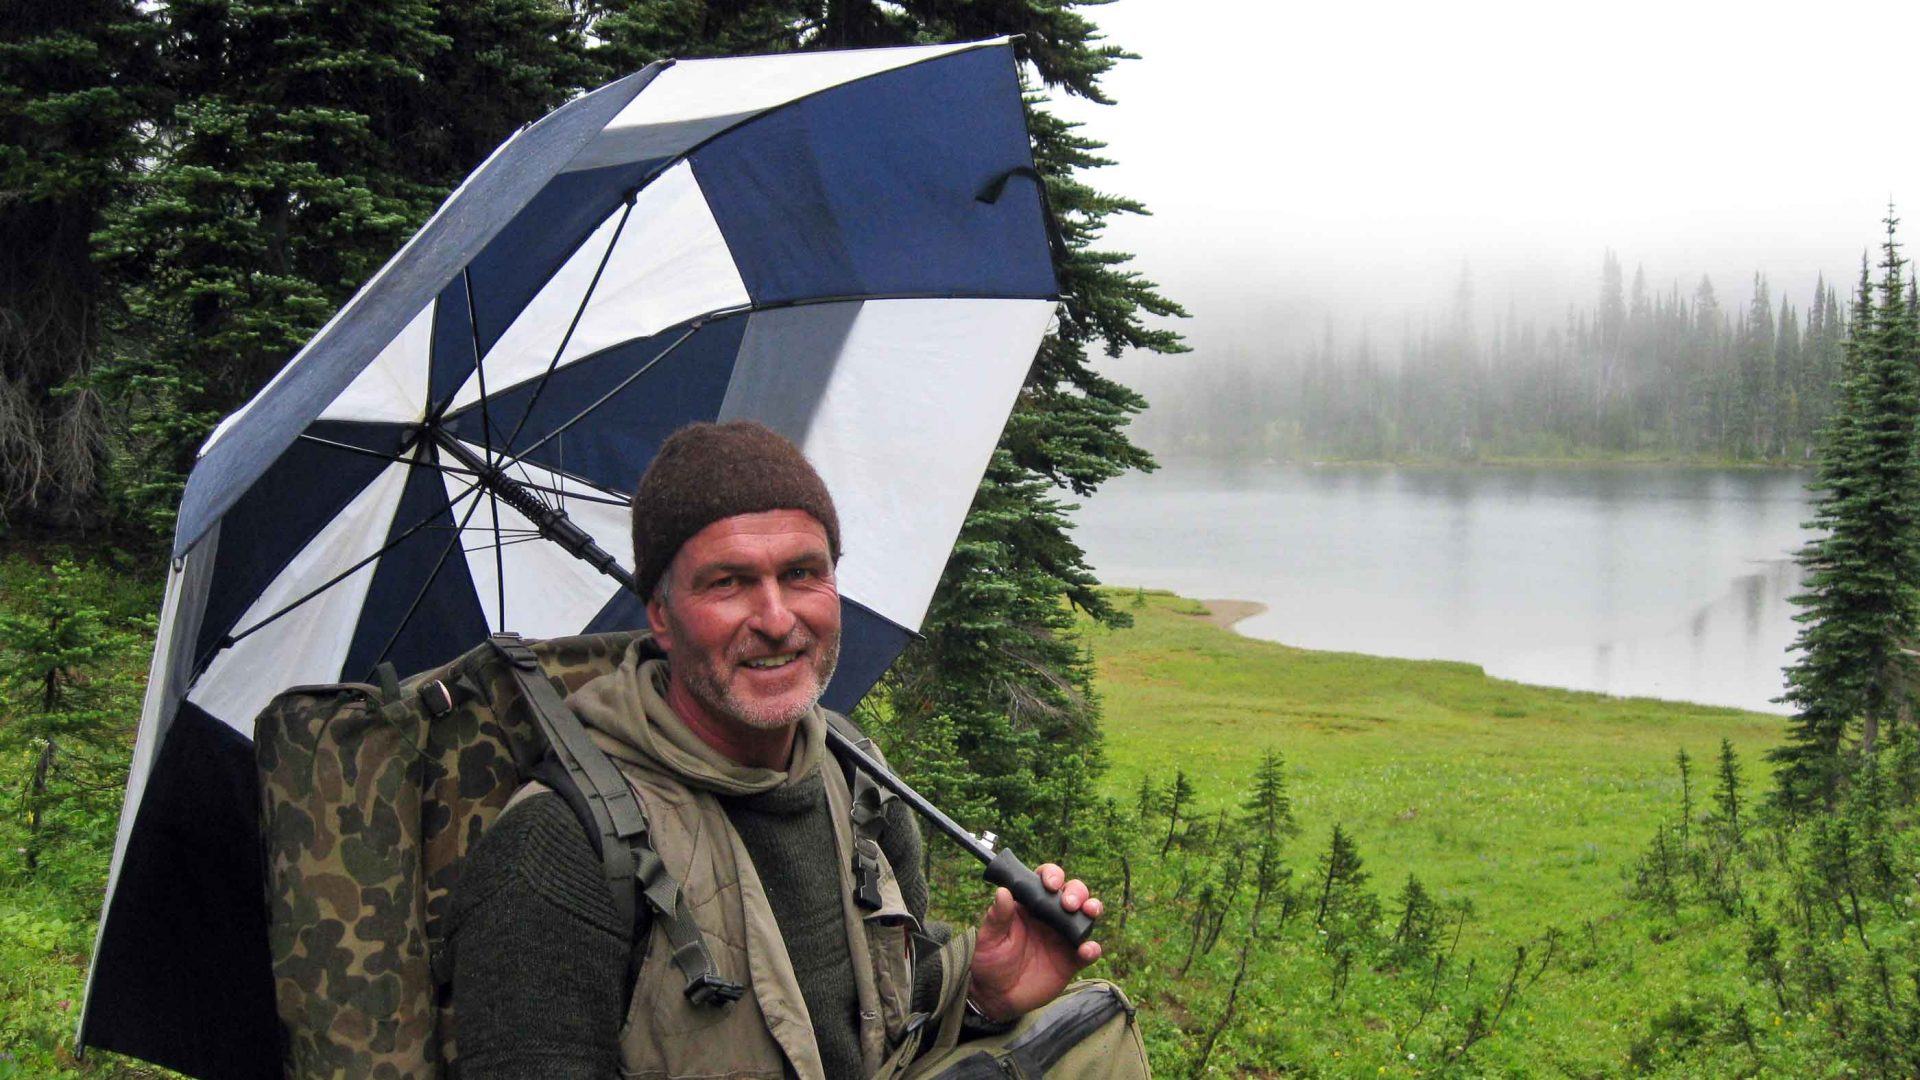 Gordon stands with an umbrella near green grass and grey river.